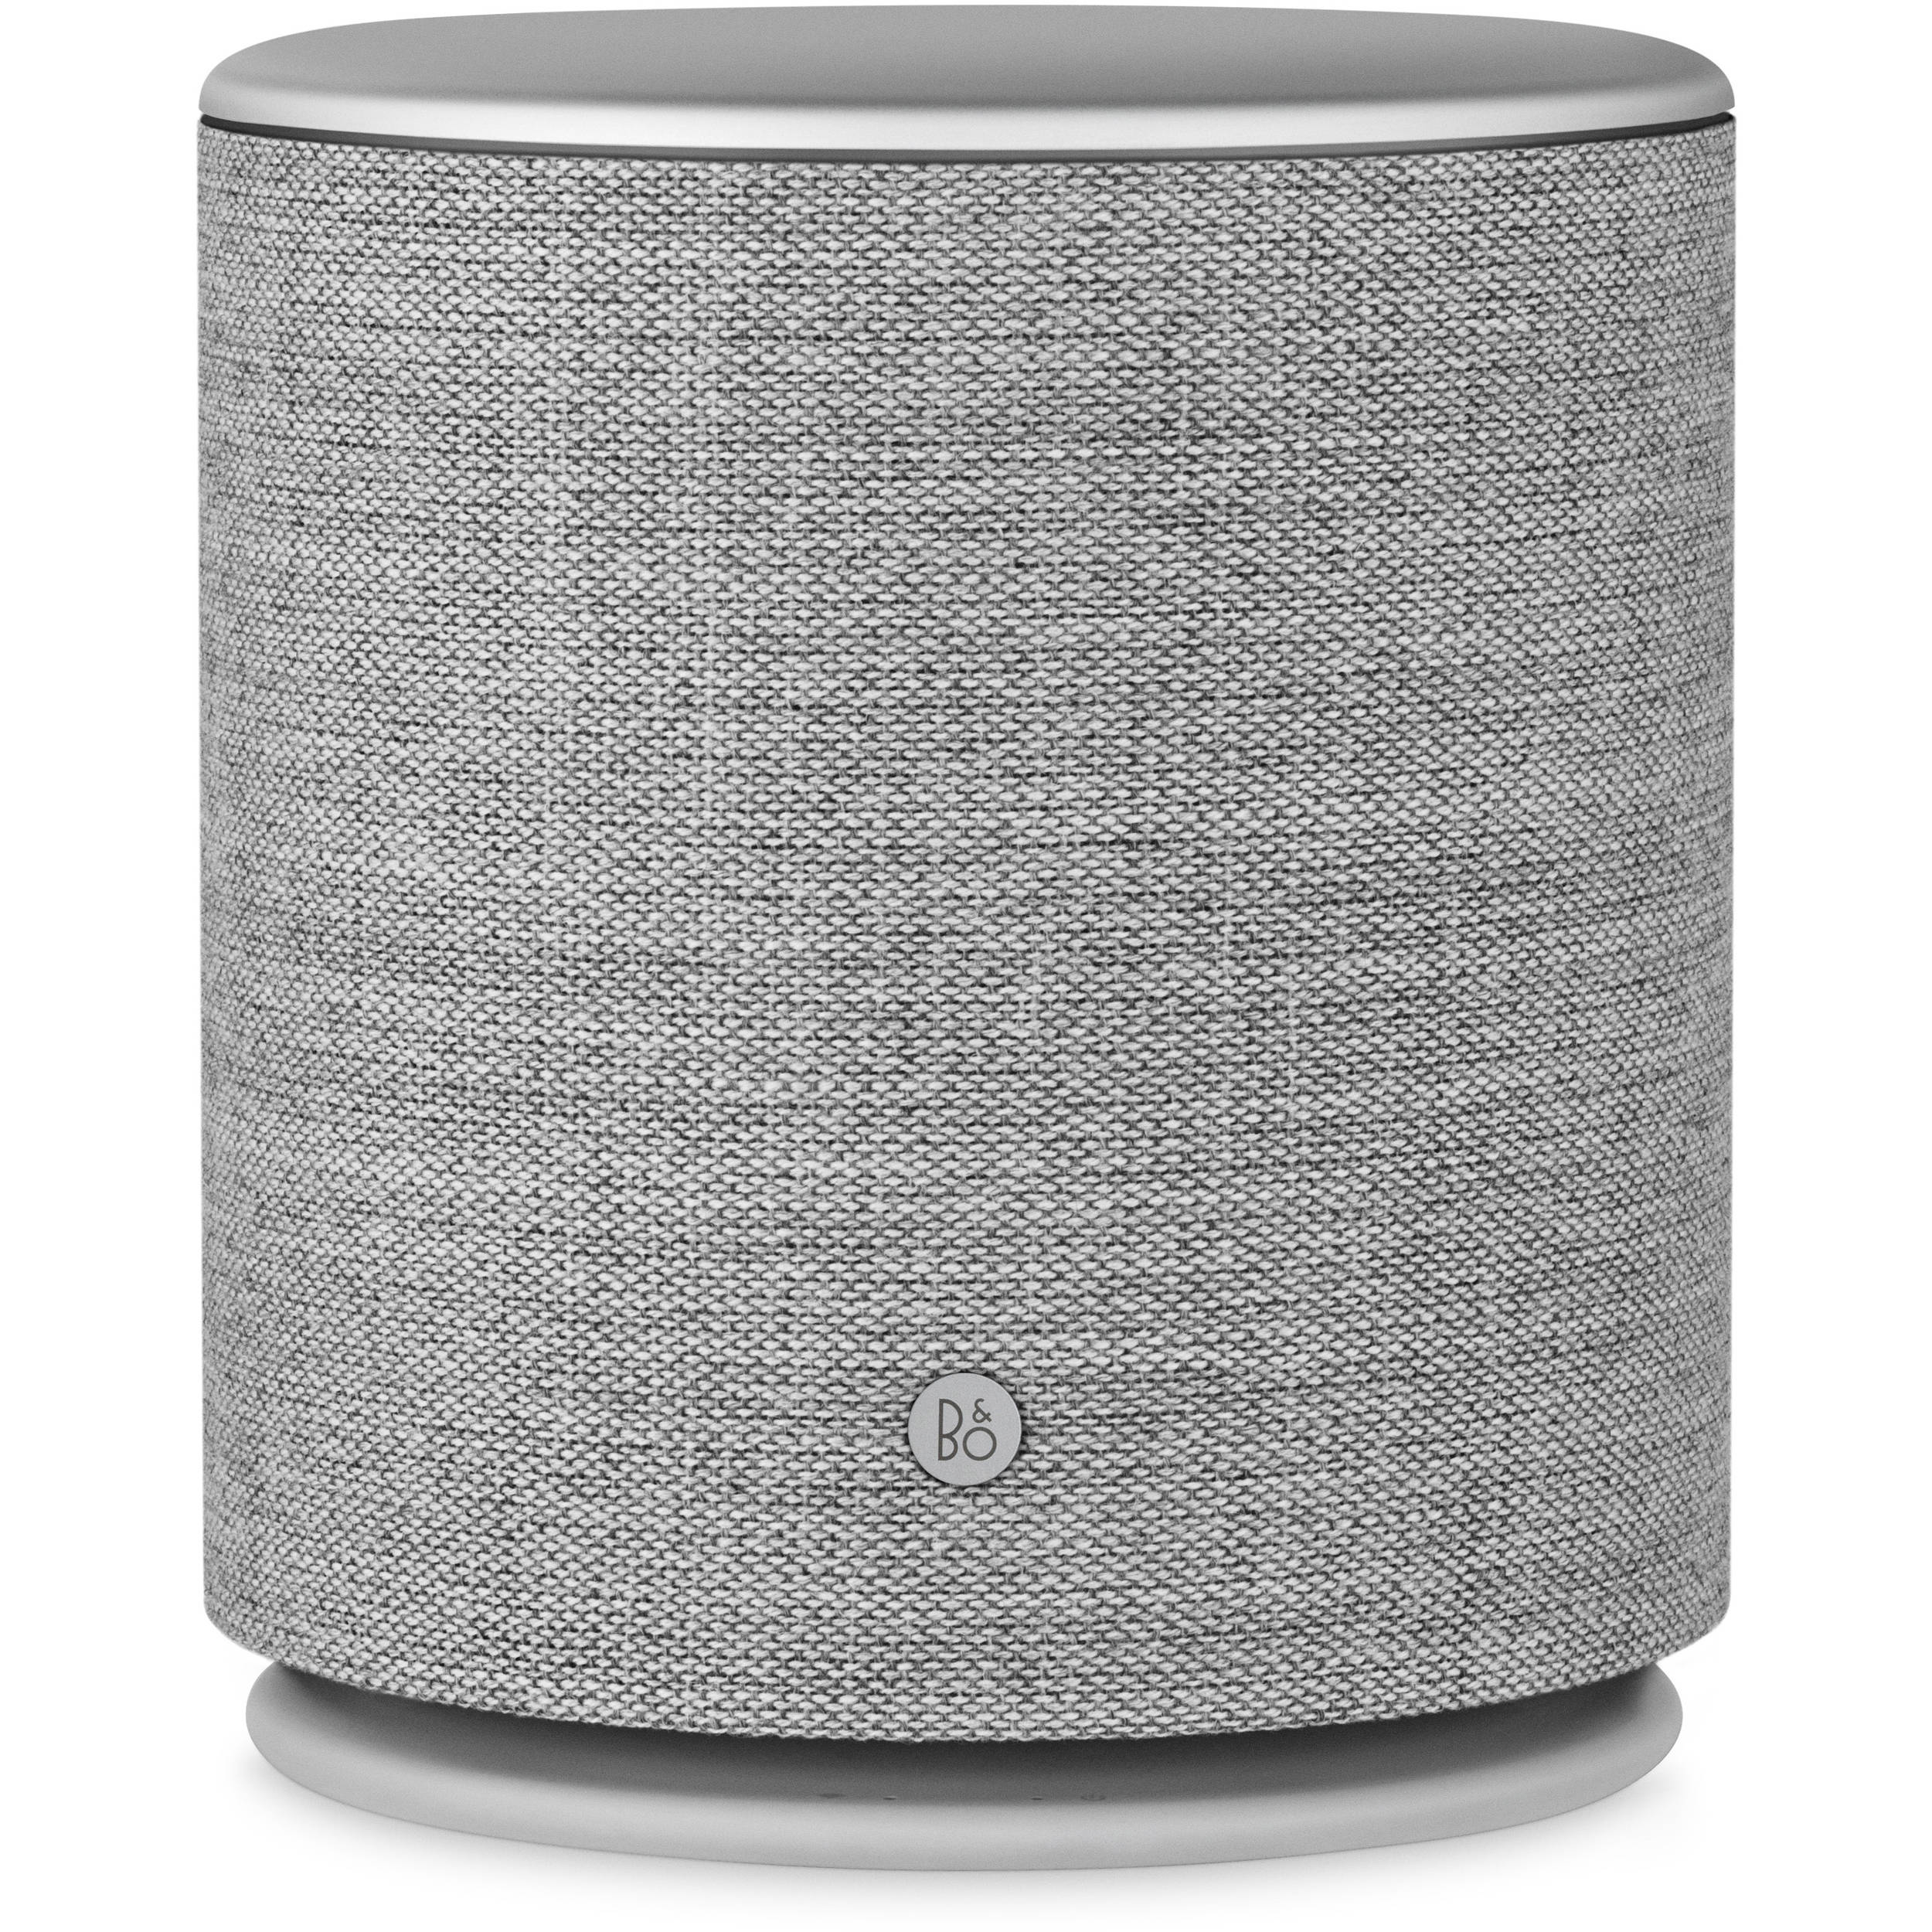 HP and Bang & Olufsen Partner to Bring Premium Sound to PCs